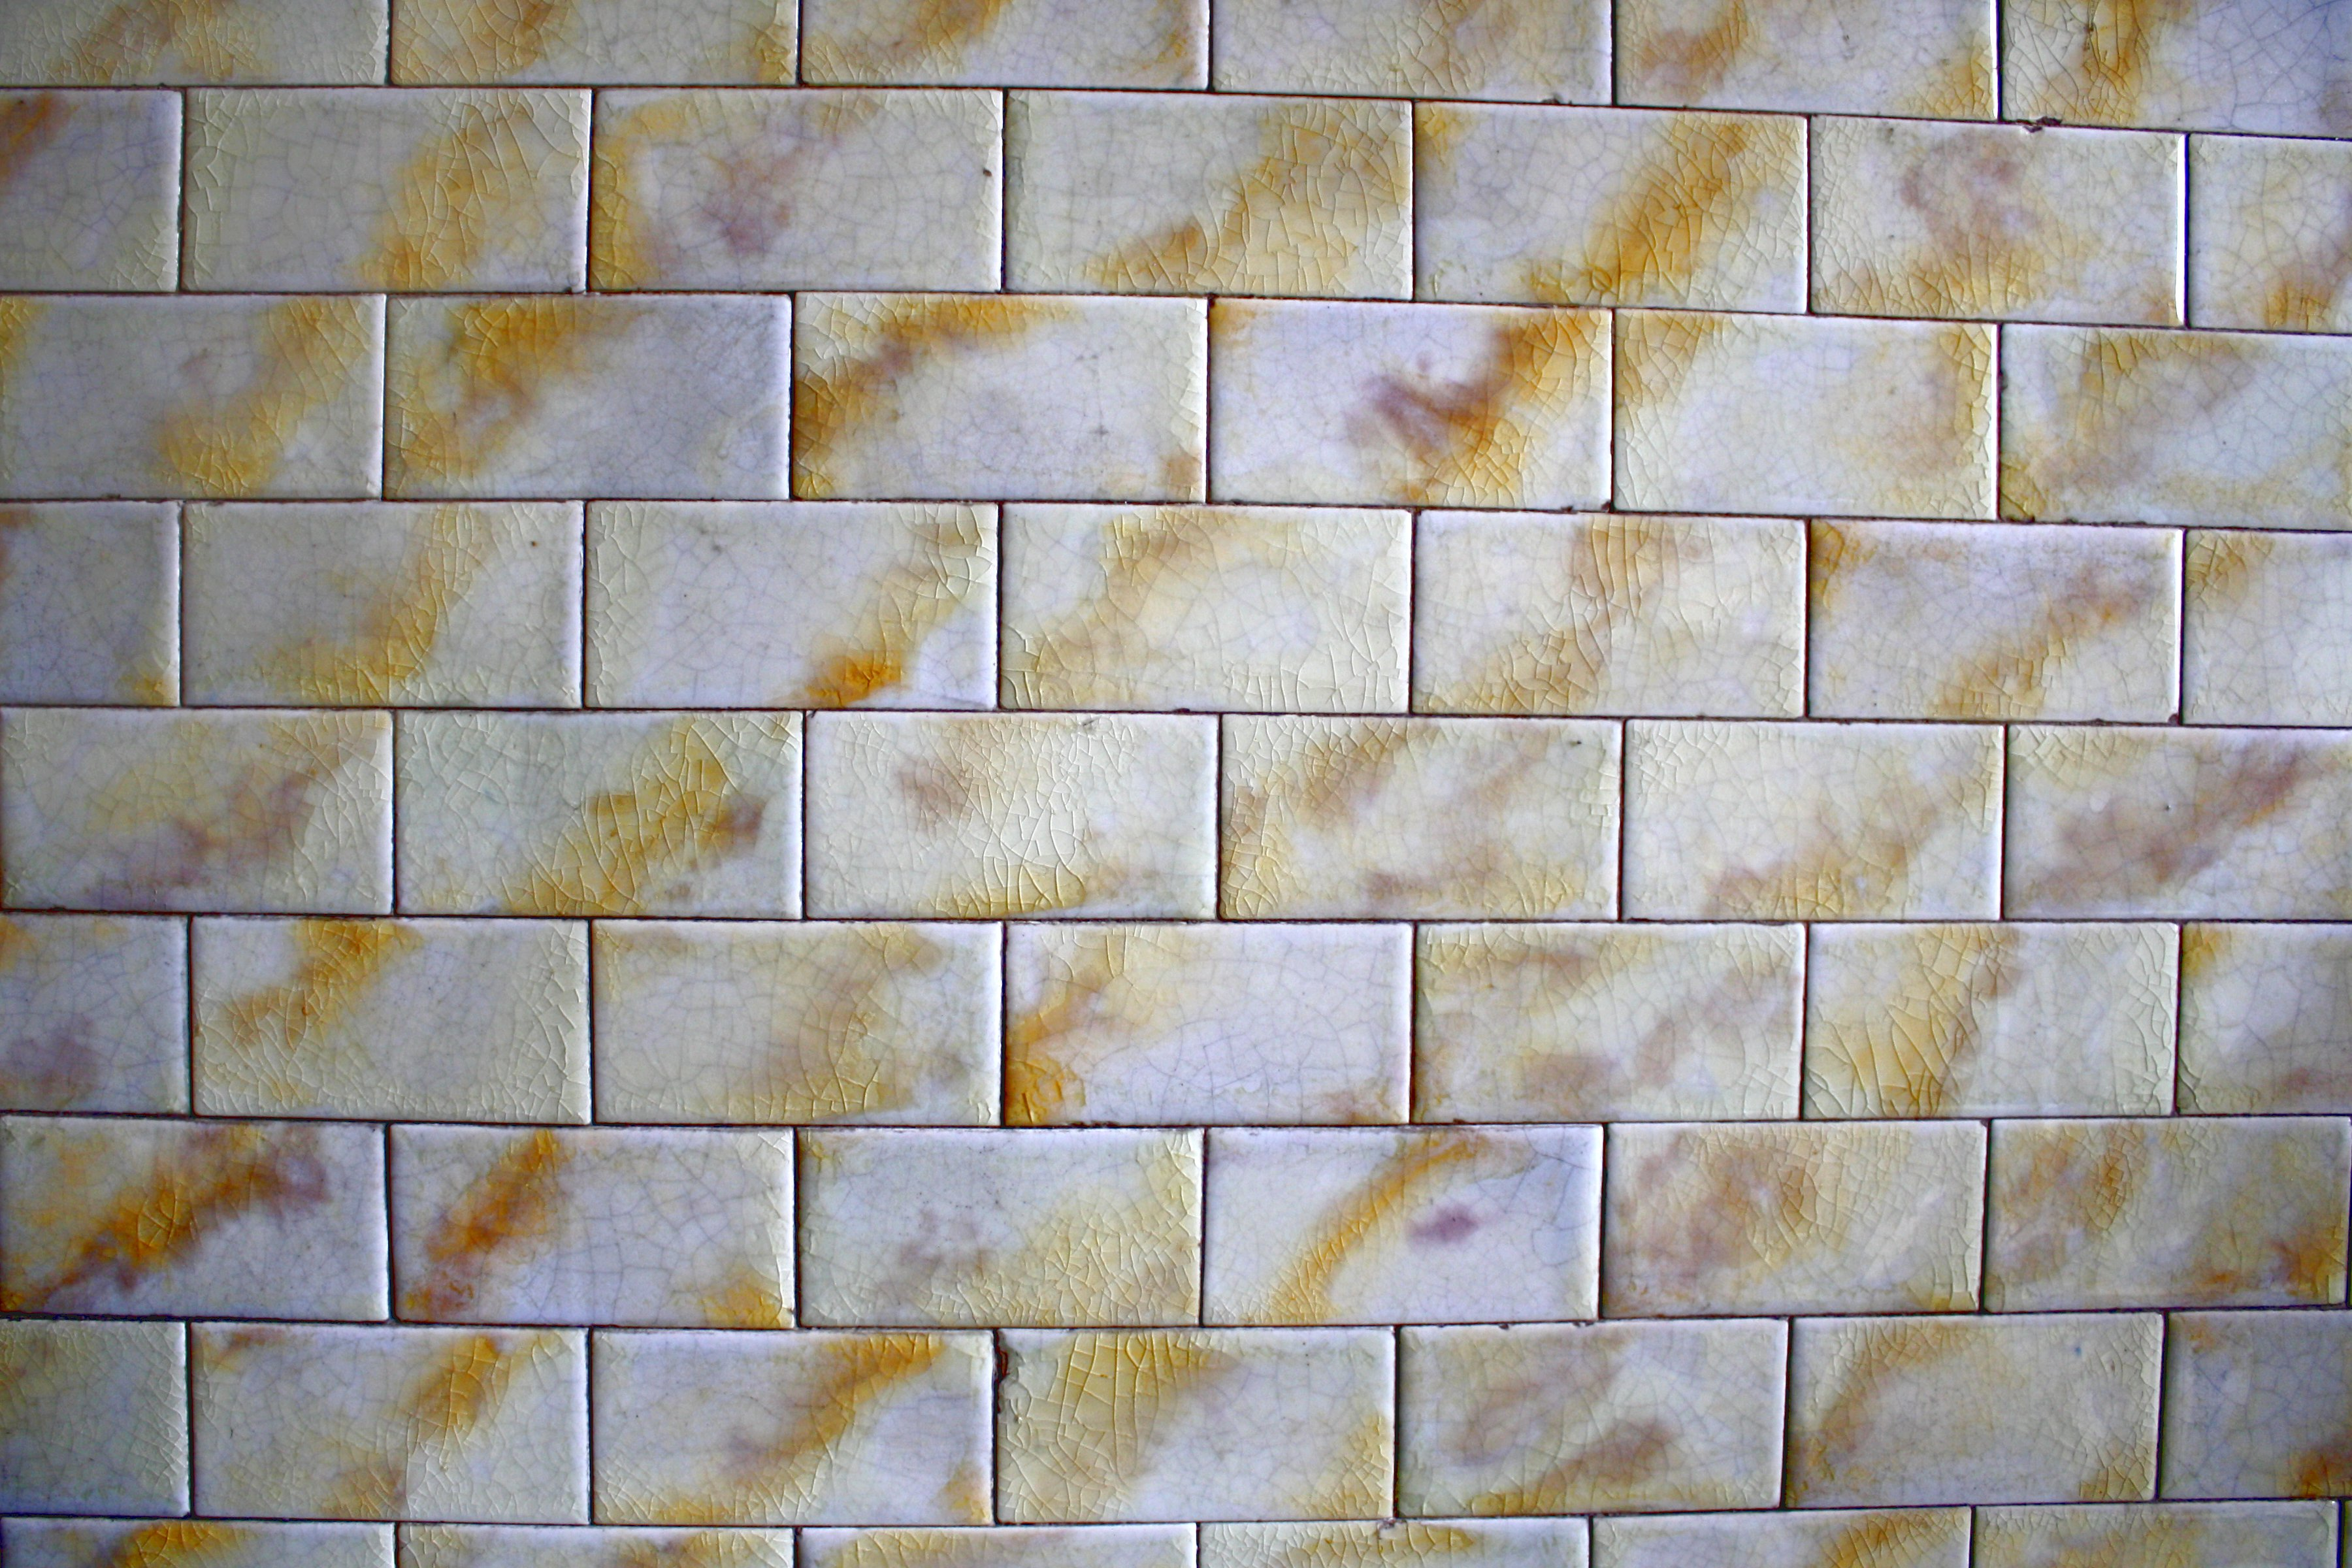 Vintage Gold and White Tile Texture Picture  Free Photograph  Photos Public Domain